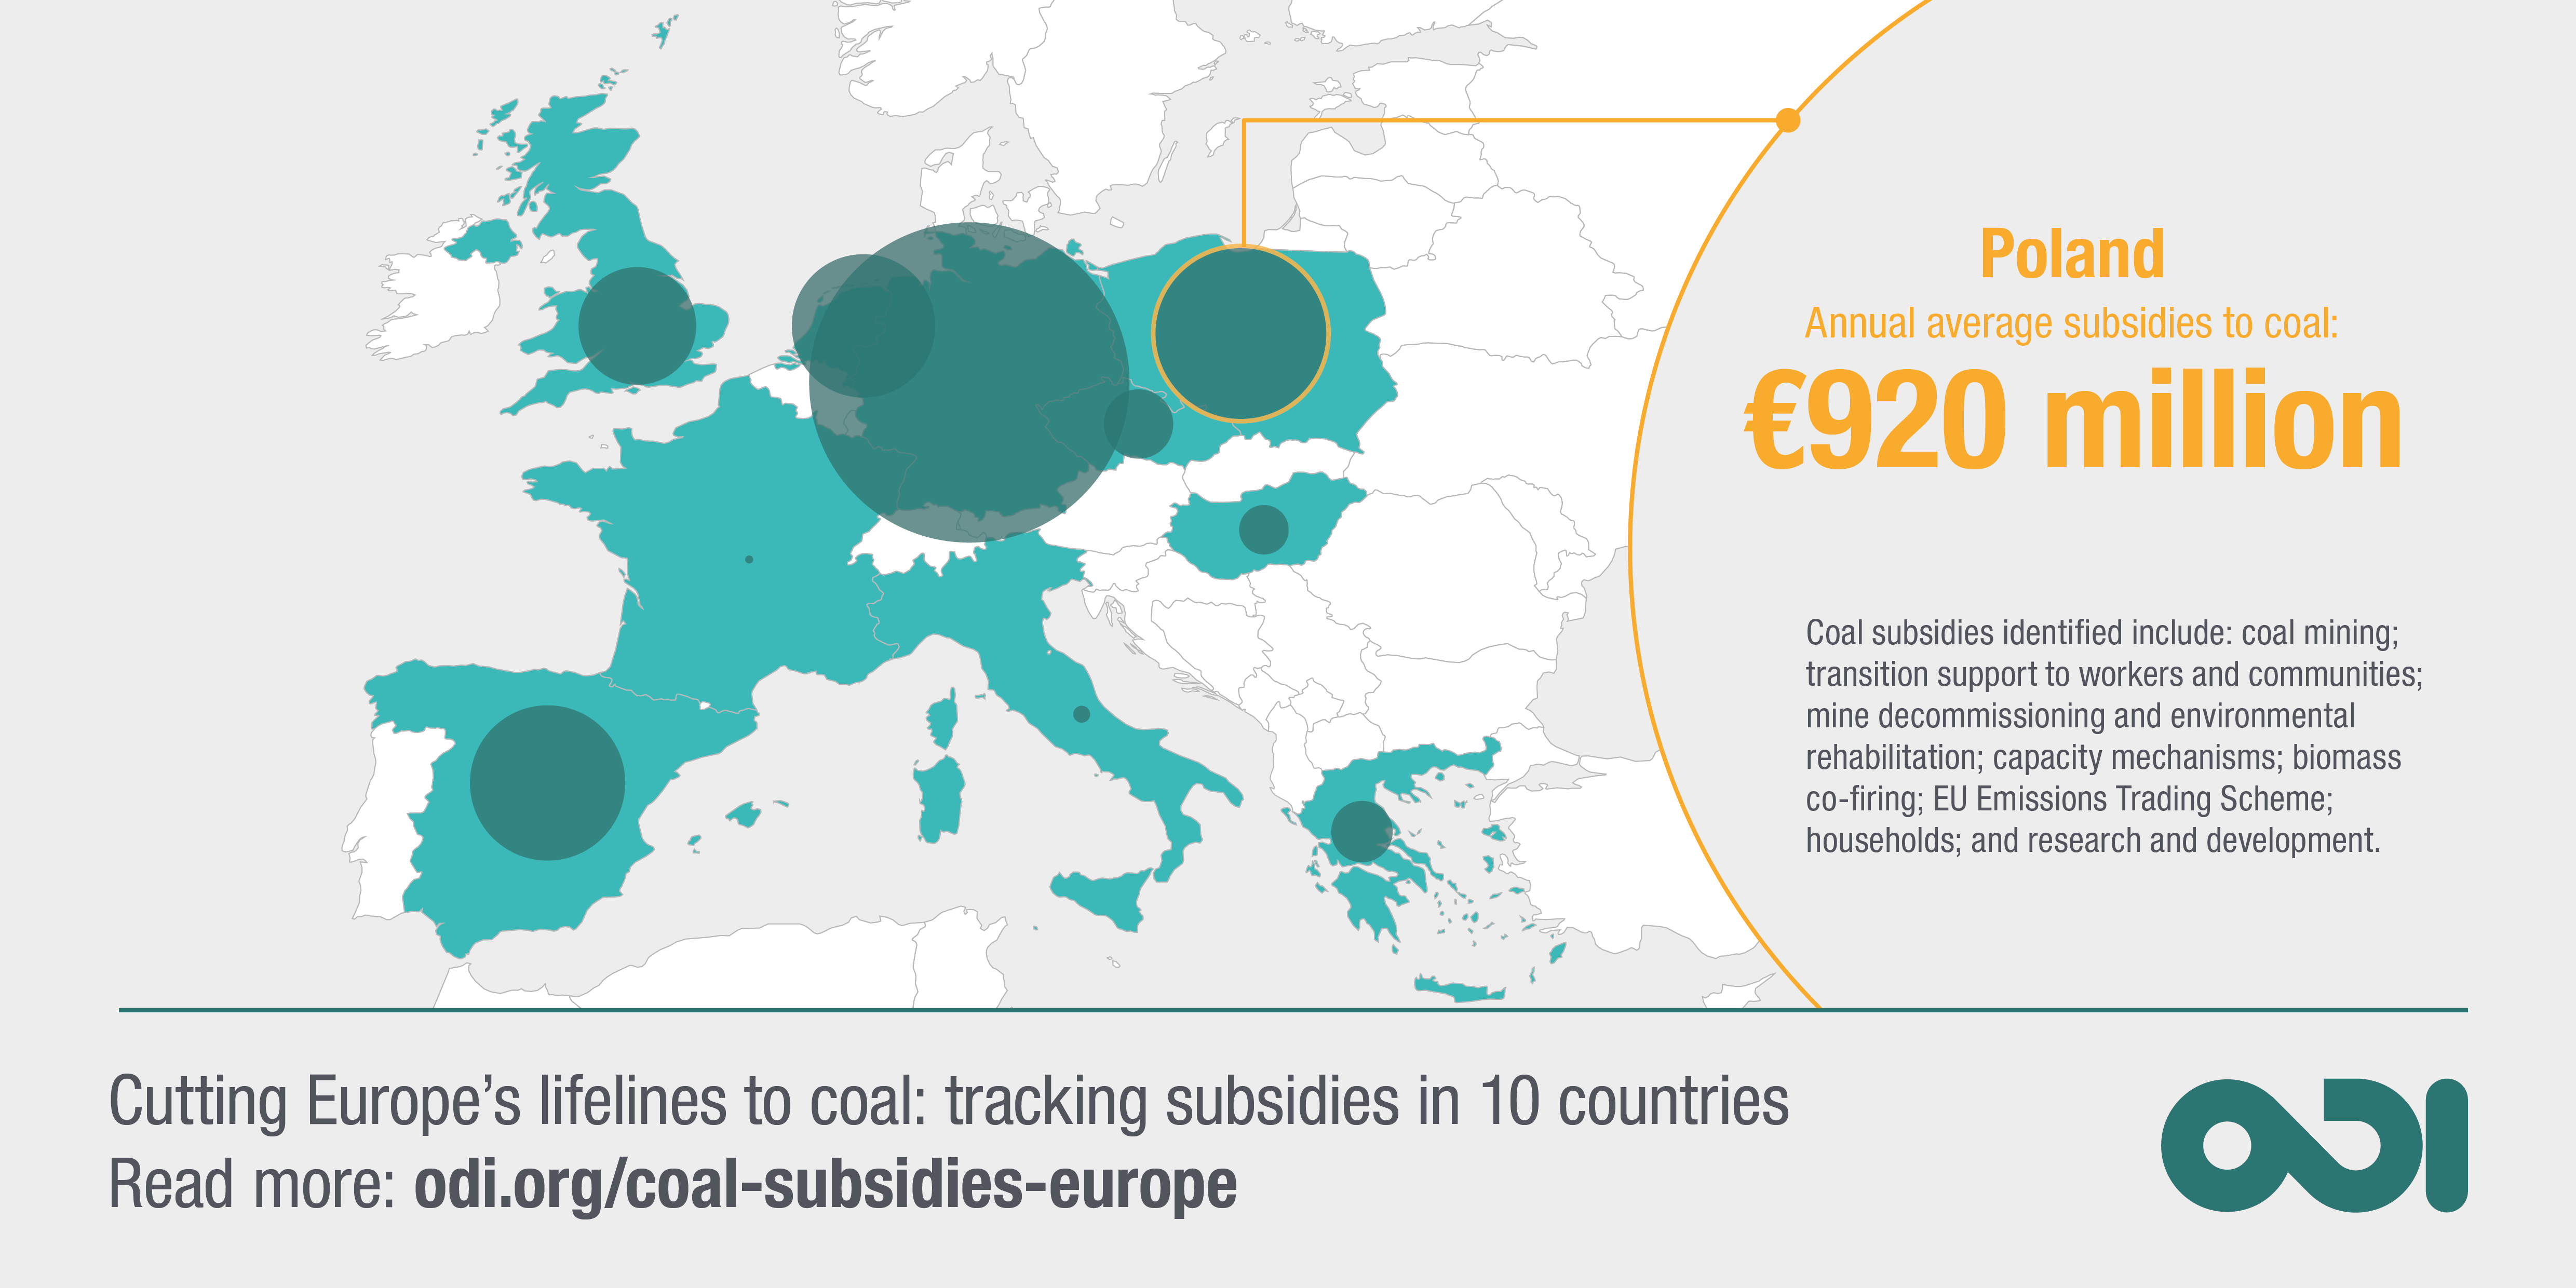 Infographic: Coal subsidies in Poland